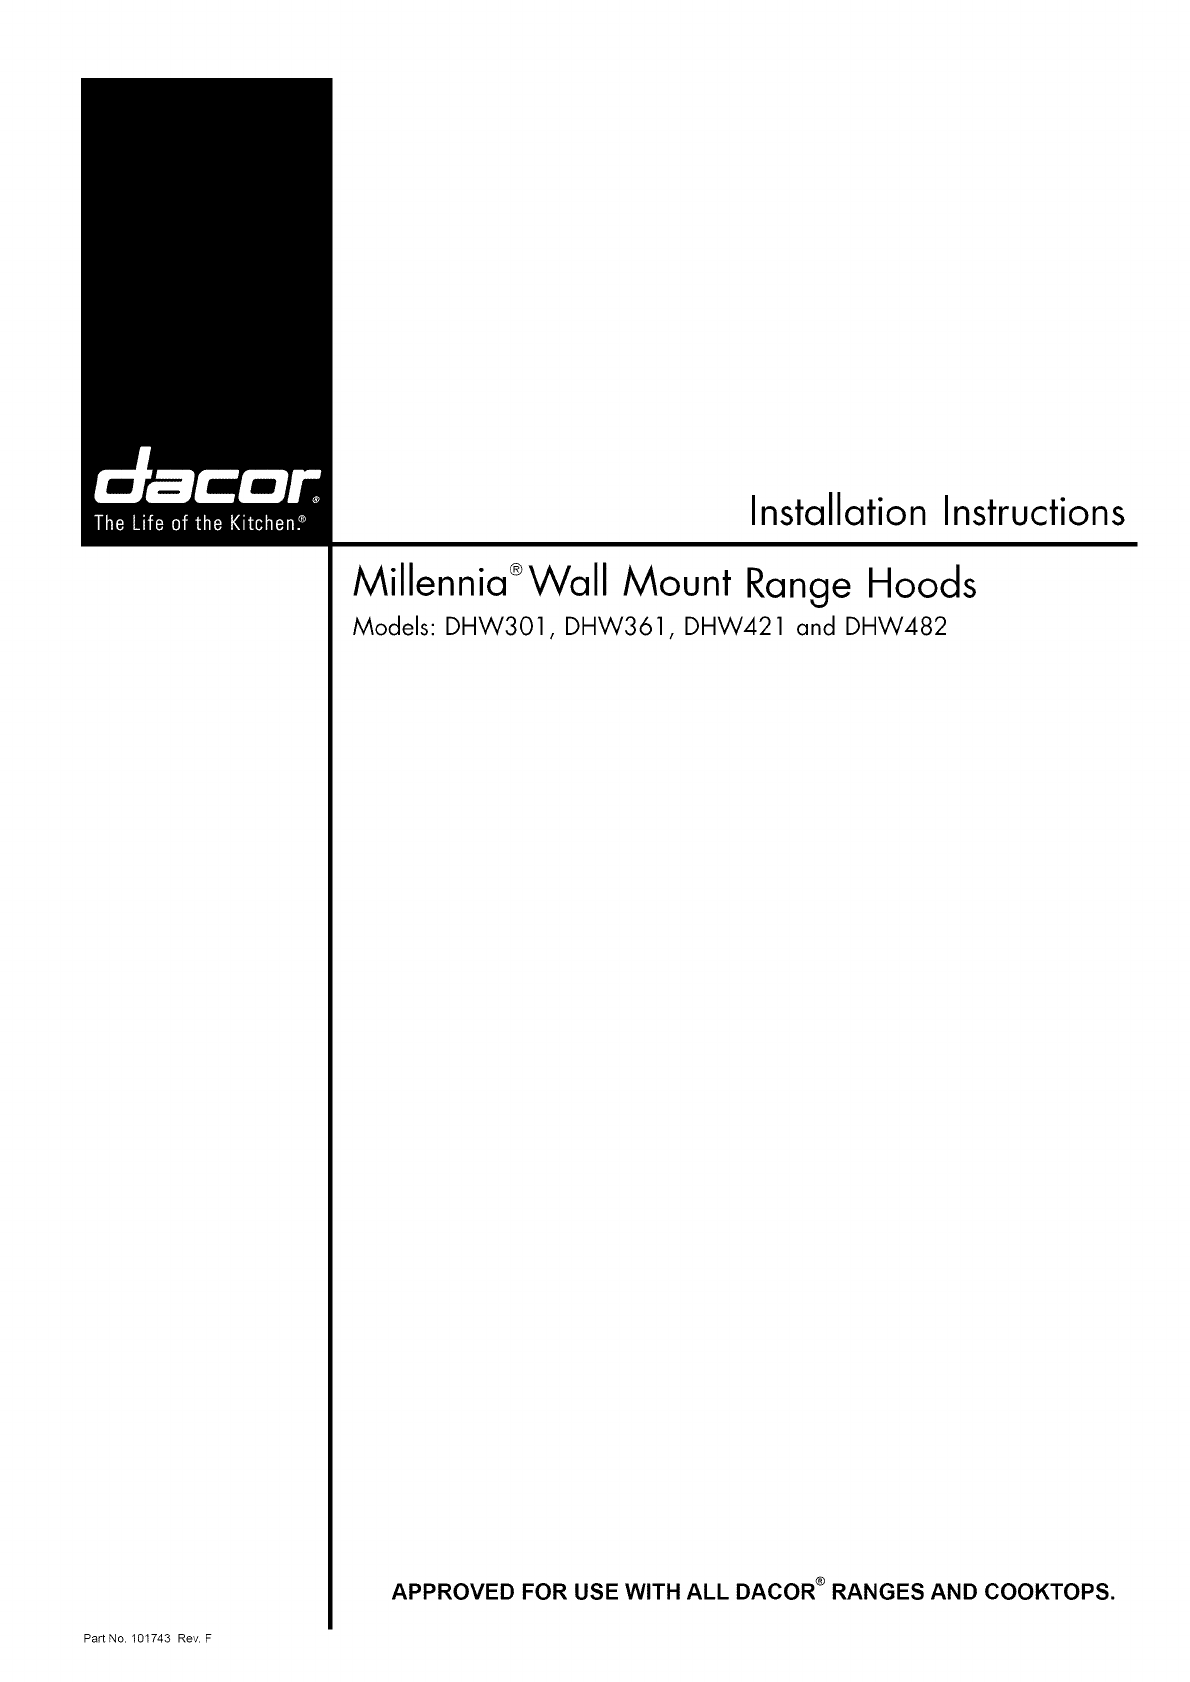 Dacor Double Oven Wiring Diagram House Symbols 220v Stove Trusted Rh Dafpods Co A Wall